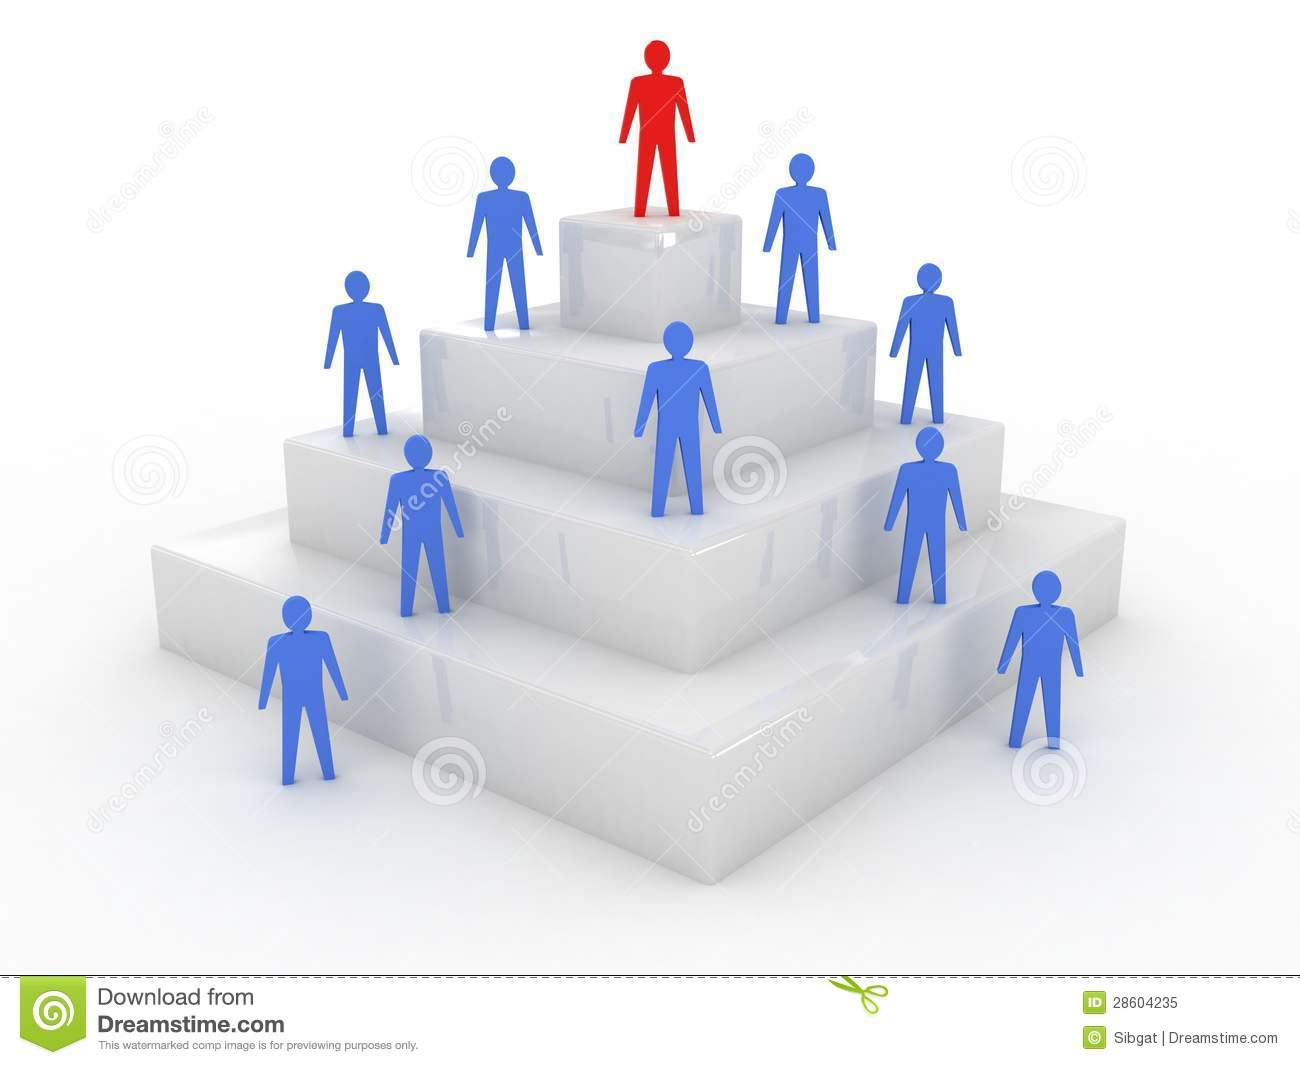 Social Hierarchy. Royalty Free Stock Photo - Image: 28604235